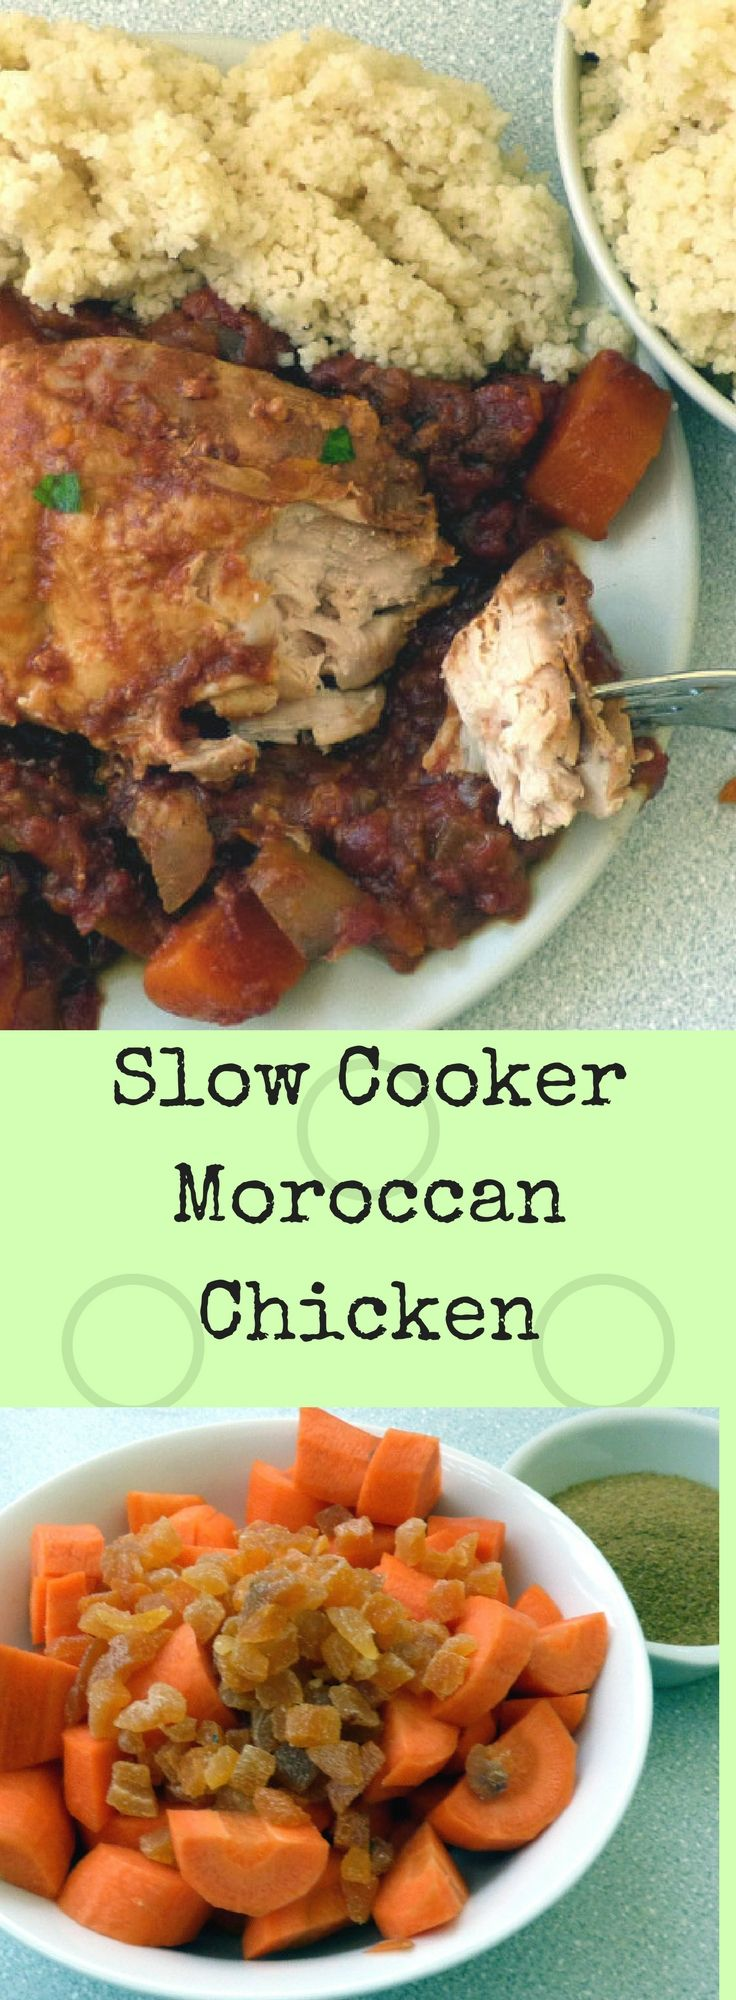 Travel the world in your own kitchen with this easy low fat slow cooker comfort food chicken recipe